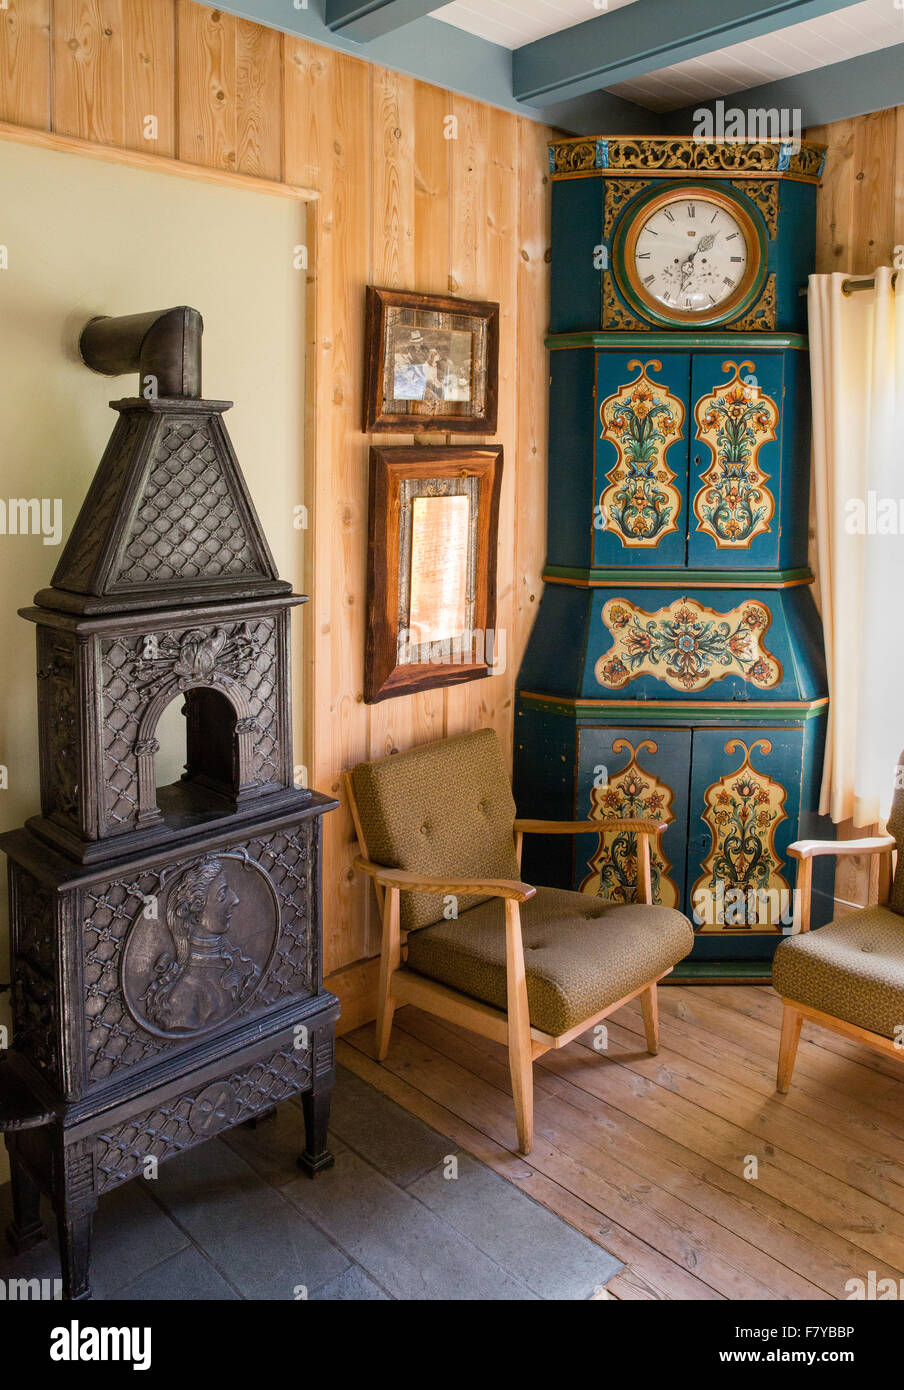 Elegant scandinavian interior decorated with antique furniture at the  Kongsvold Hotel in Oppland central Norway - Elegant Scandinavian Interior Decorated With Antique Furniture At